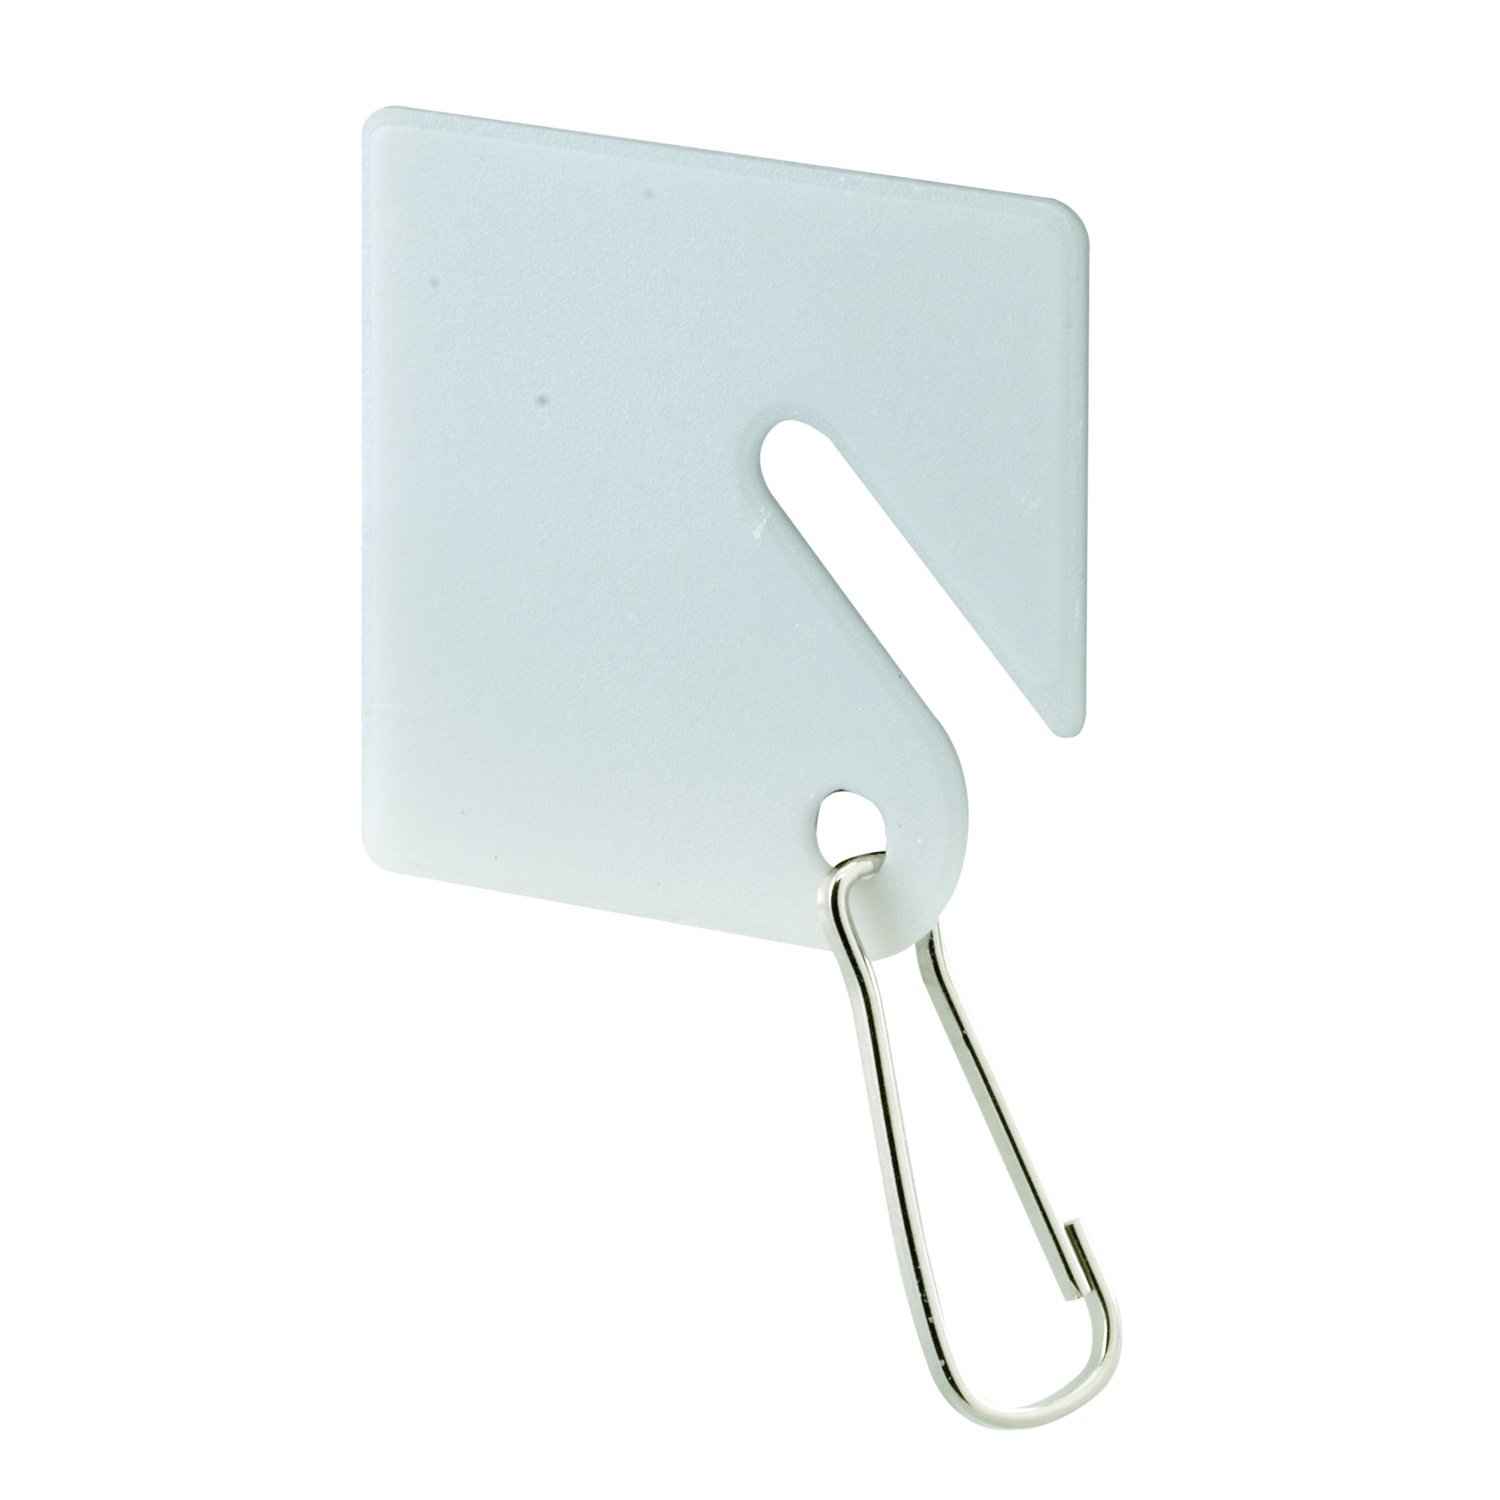 Prime-Line MP4269 Key Plastic Tags, White, Steel Hook, Pack of 100, 100 Piece